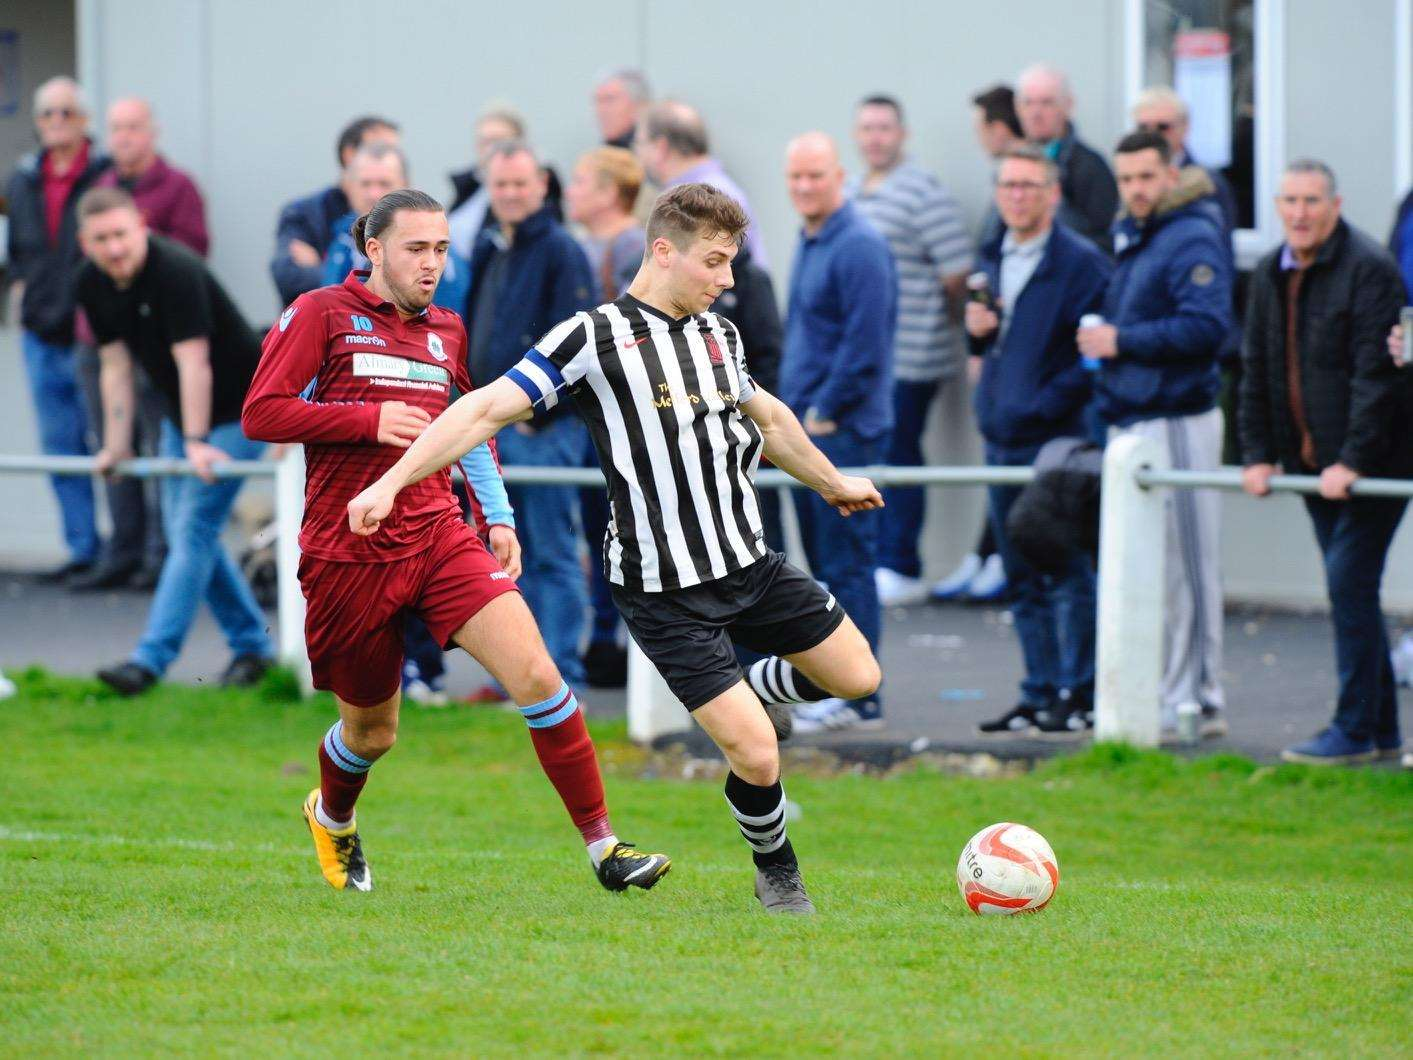 ALL SQUARE: Thetford and Long Melford played out a 1-1 draw. Picture: Mark Bullimore